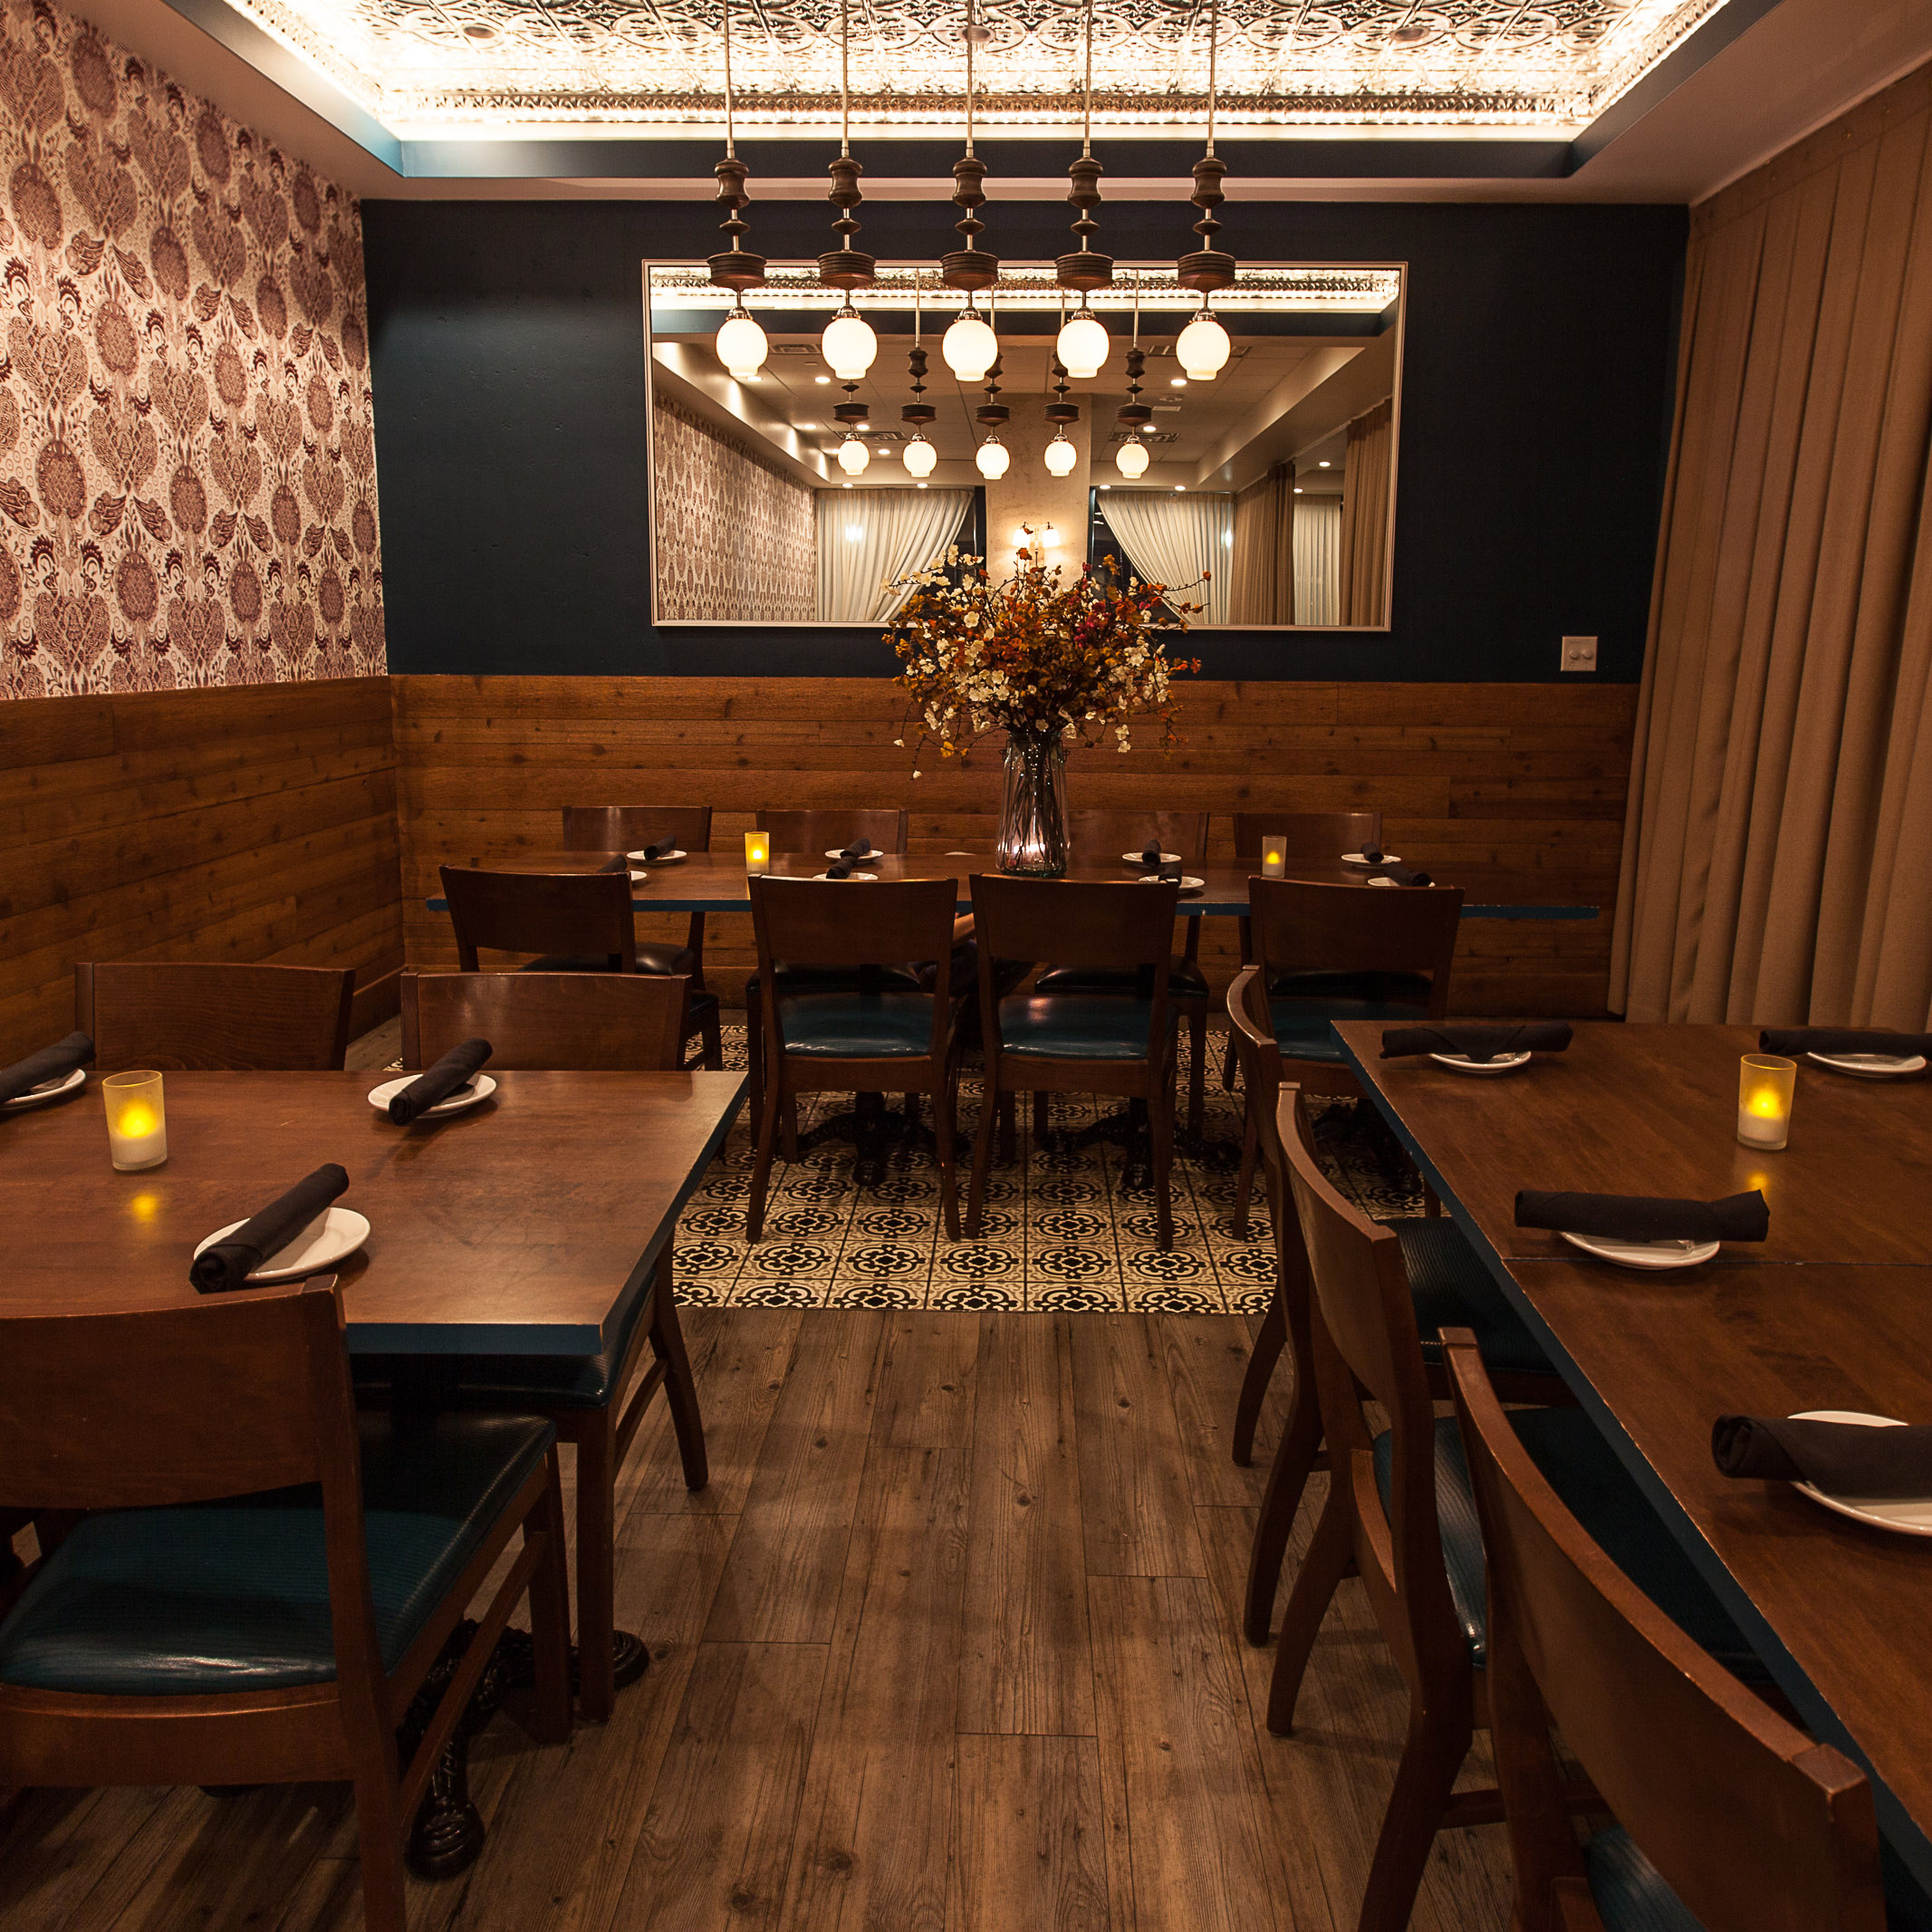 Ordinaire Rockville Private Dining Room 2 | ← Rockville Private Dining Room 2